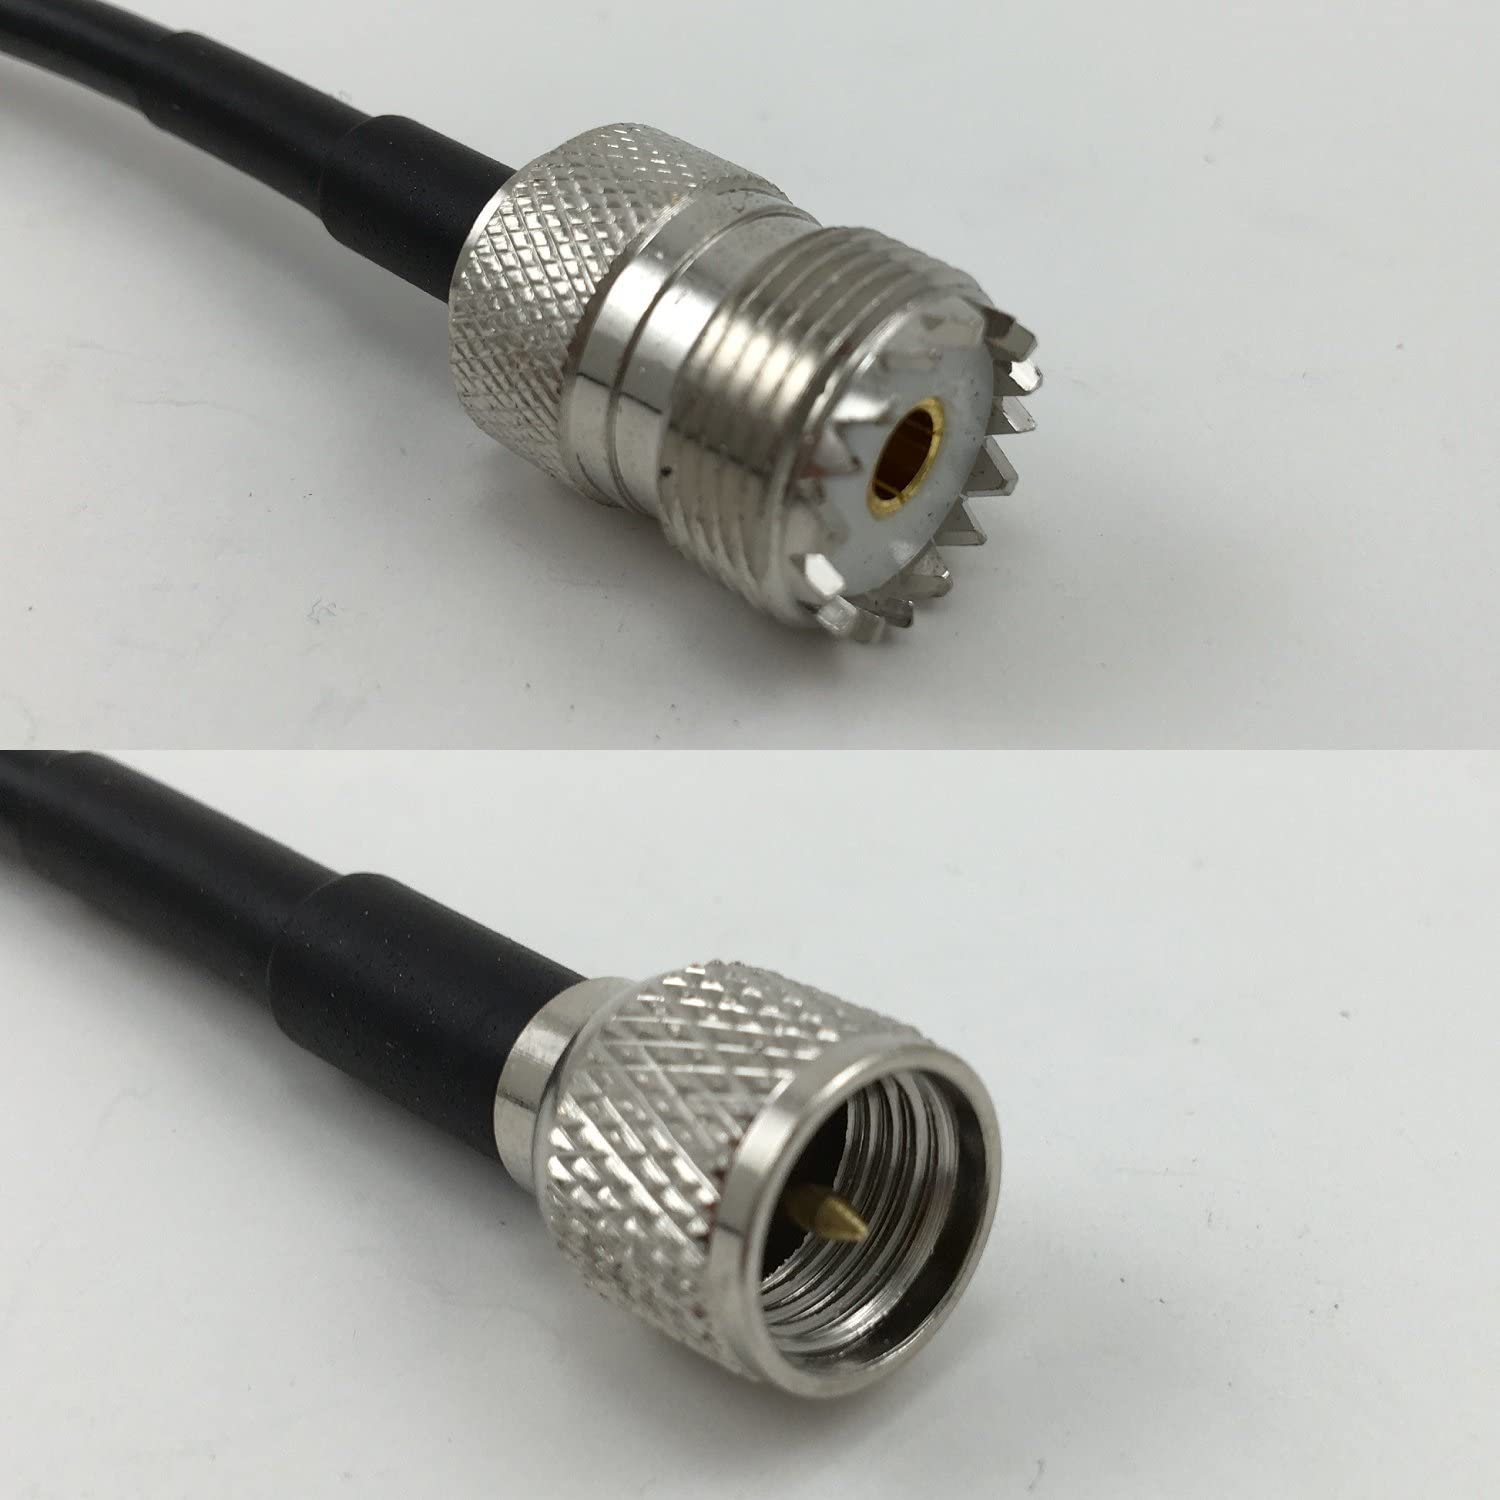 12 inch RG188 SO239 UHF Female to DVB Pal Male Angle Pigtail Jumper RF coaxial cable 50ohm Quick USA Shipping